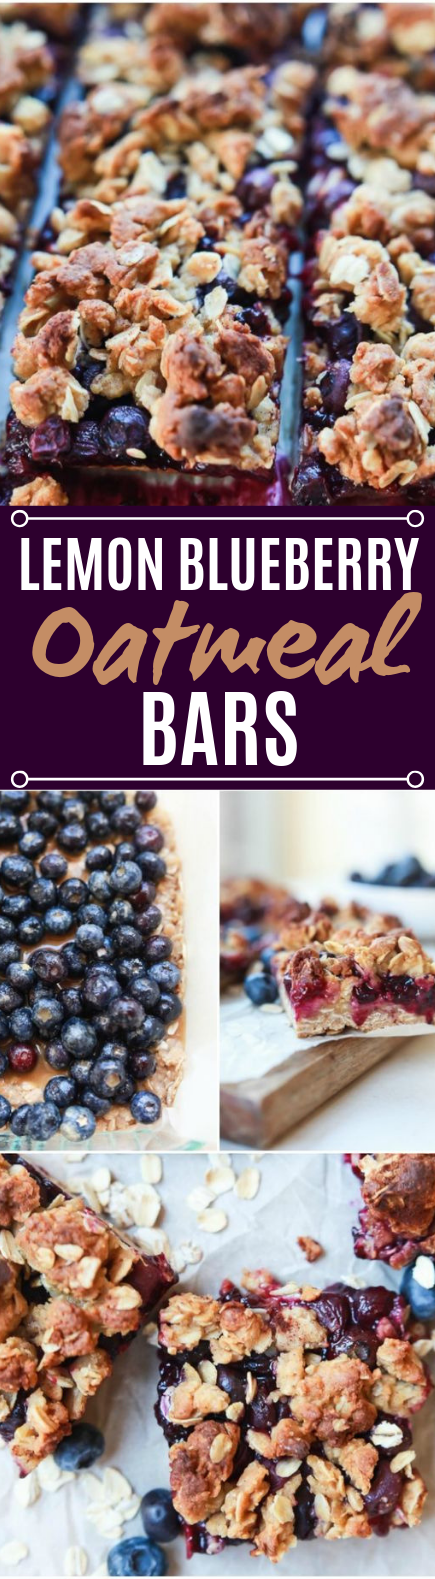 Lemon Blueberry Oatmeal Bars #desserts #snacks